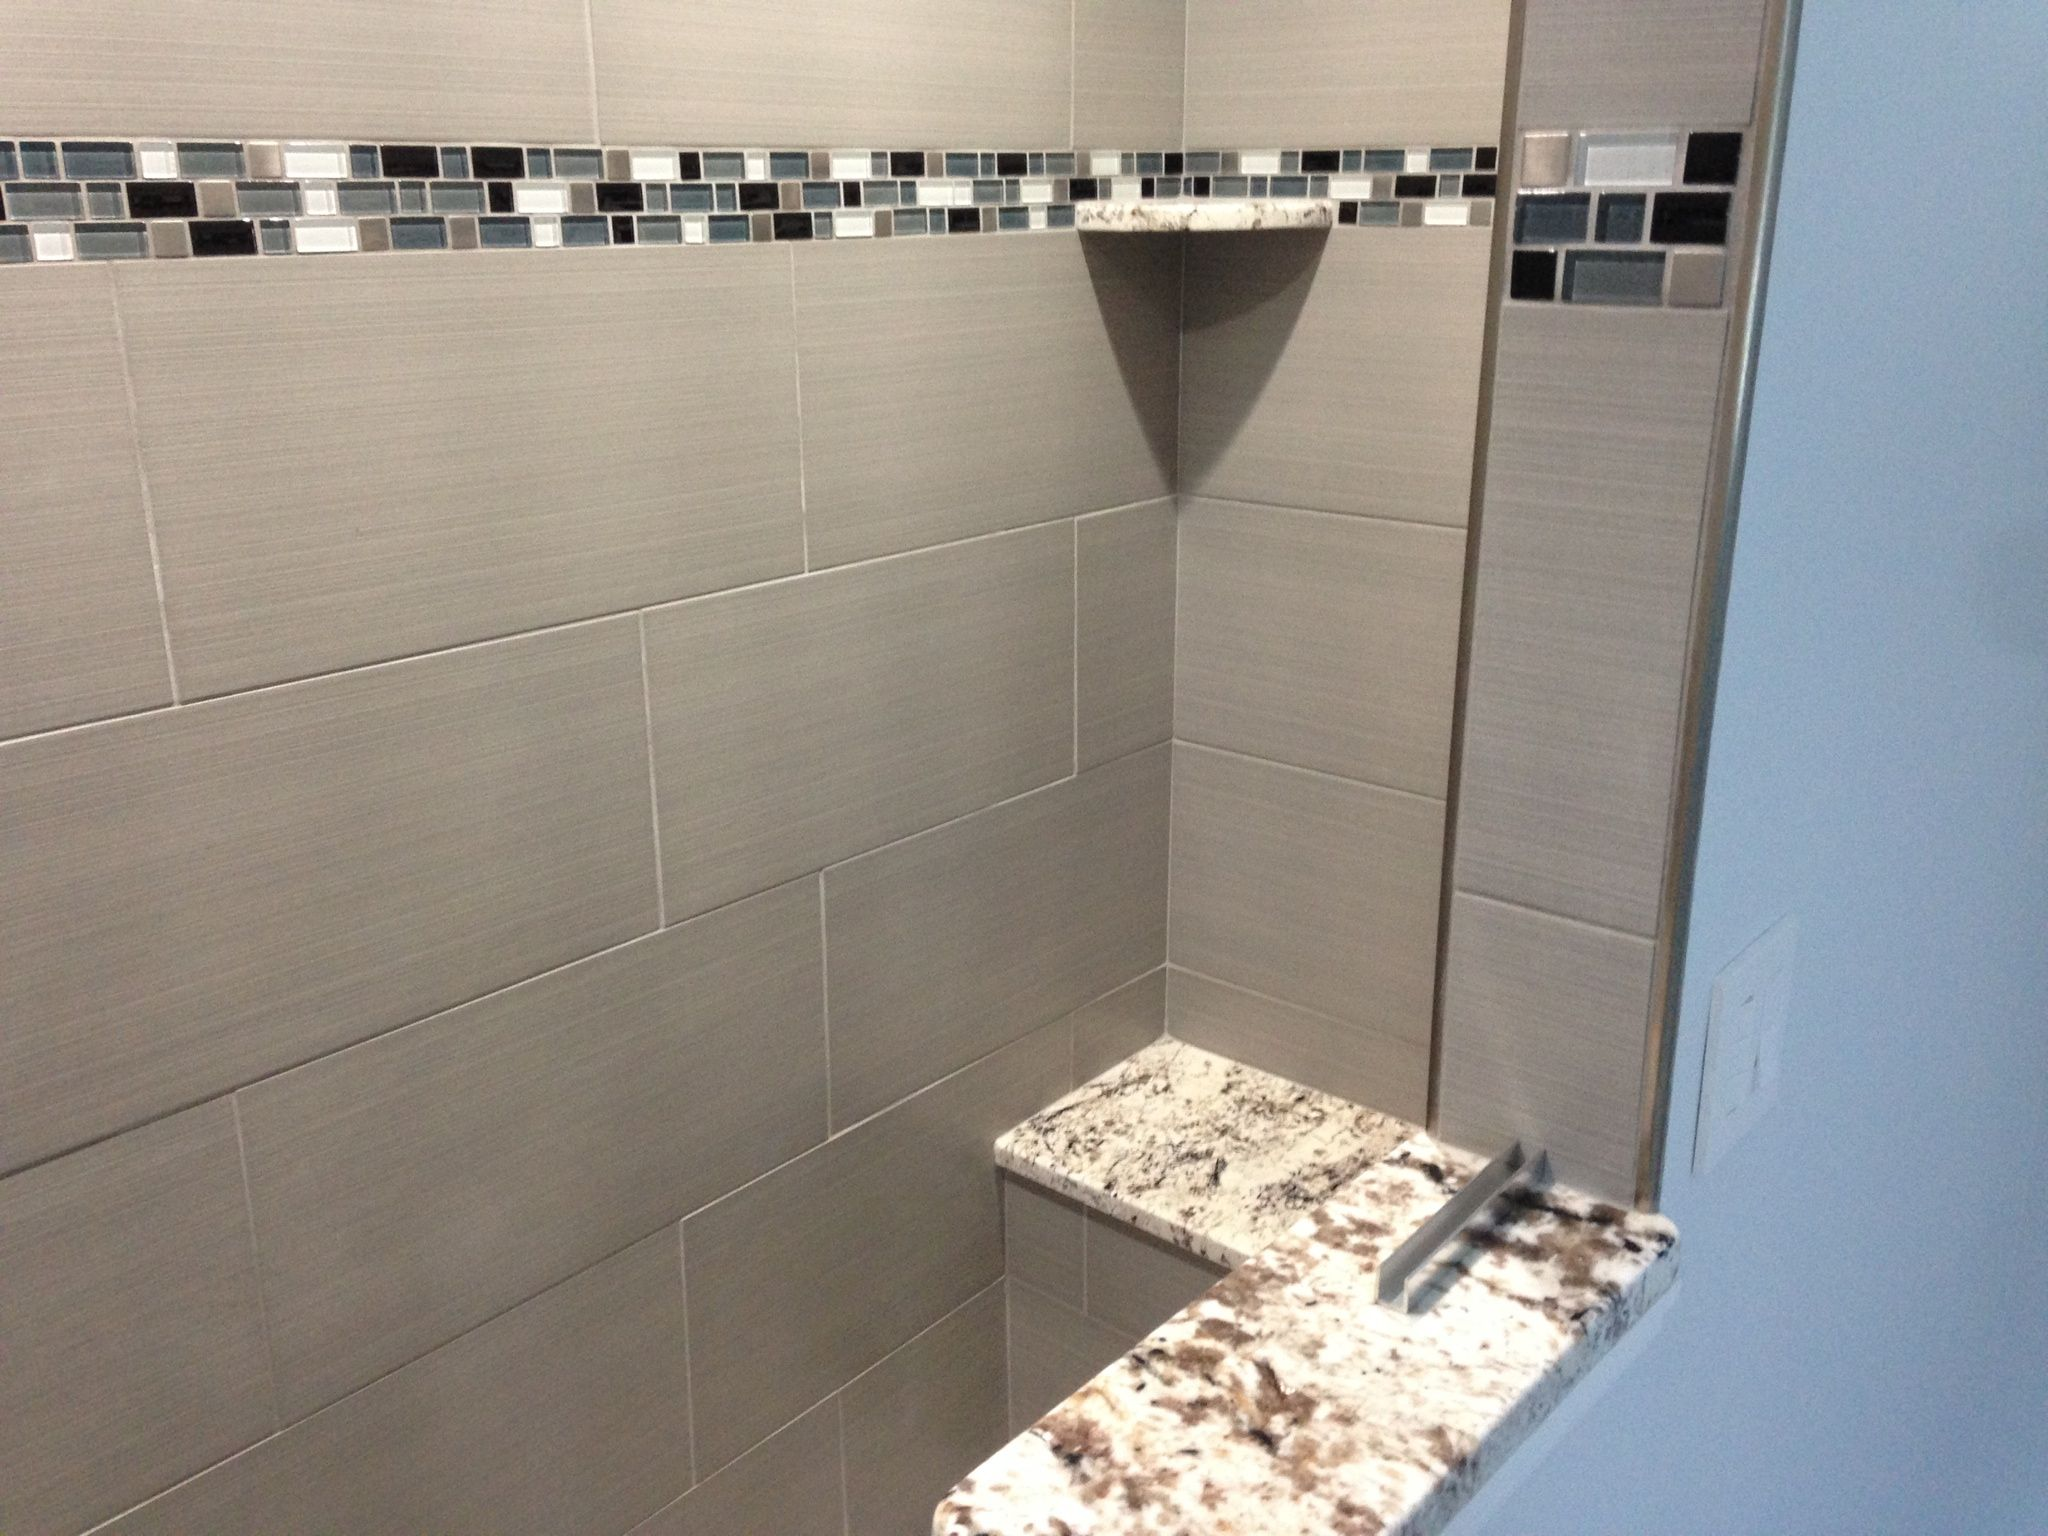 Entry View Of A Schluter Walk In Shower With NeosTile Series Tile, White  Venatino